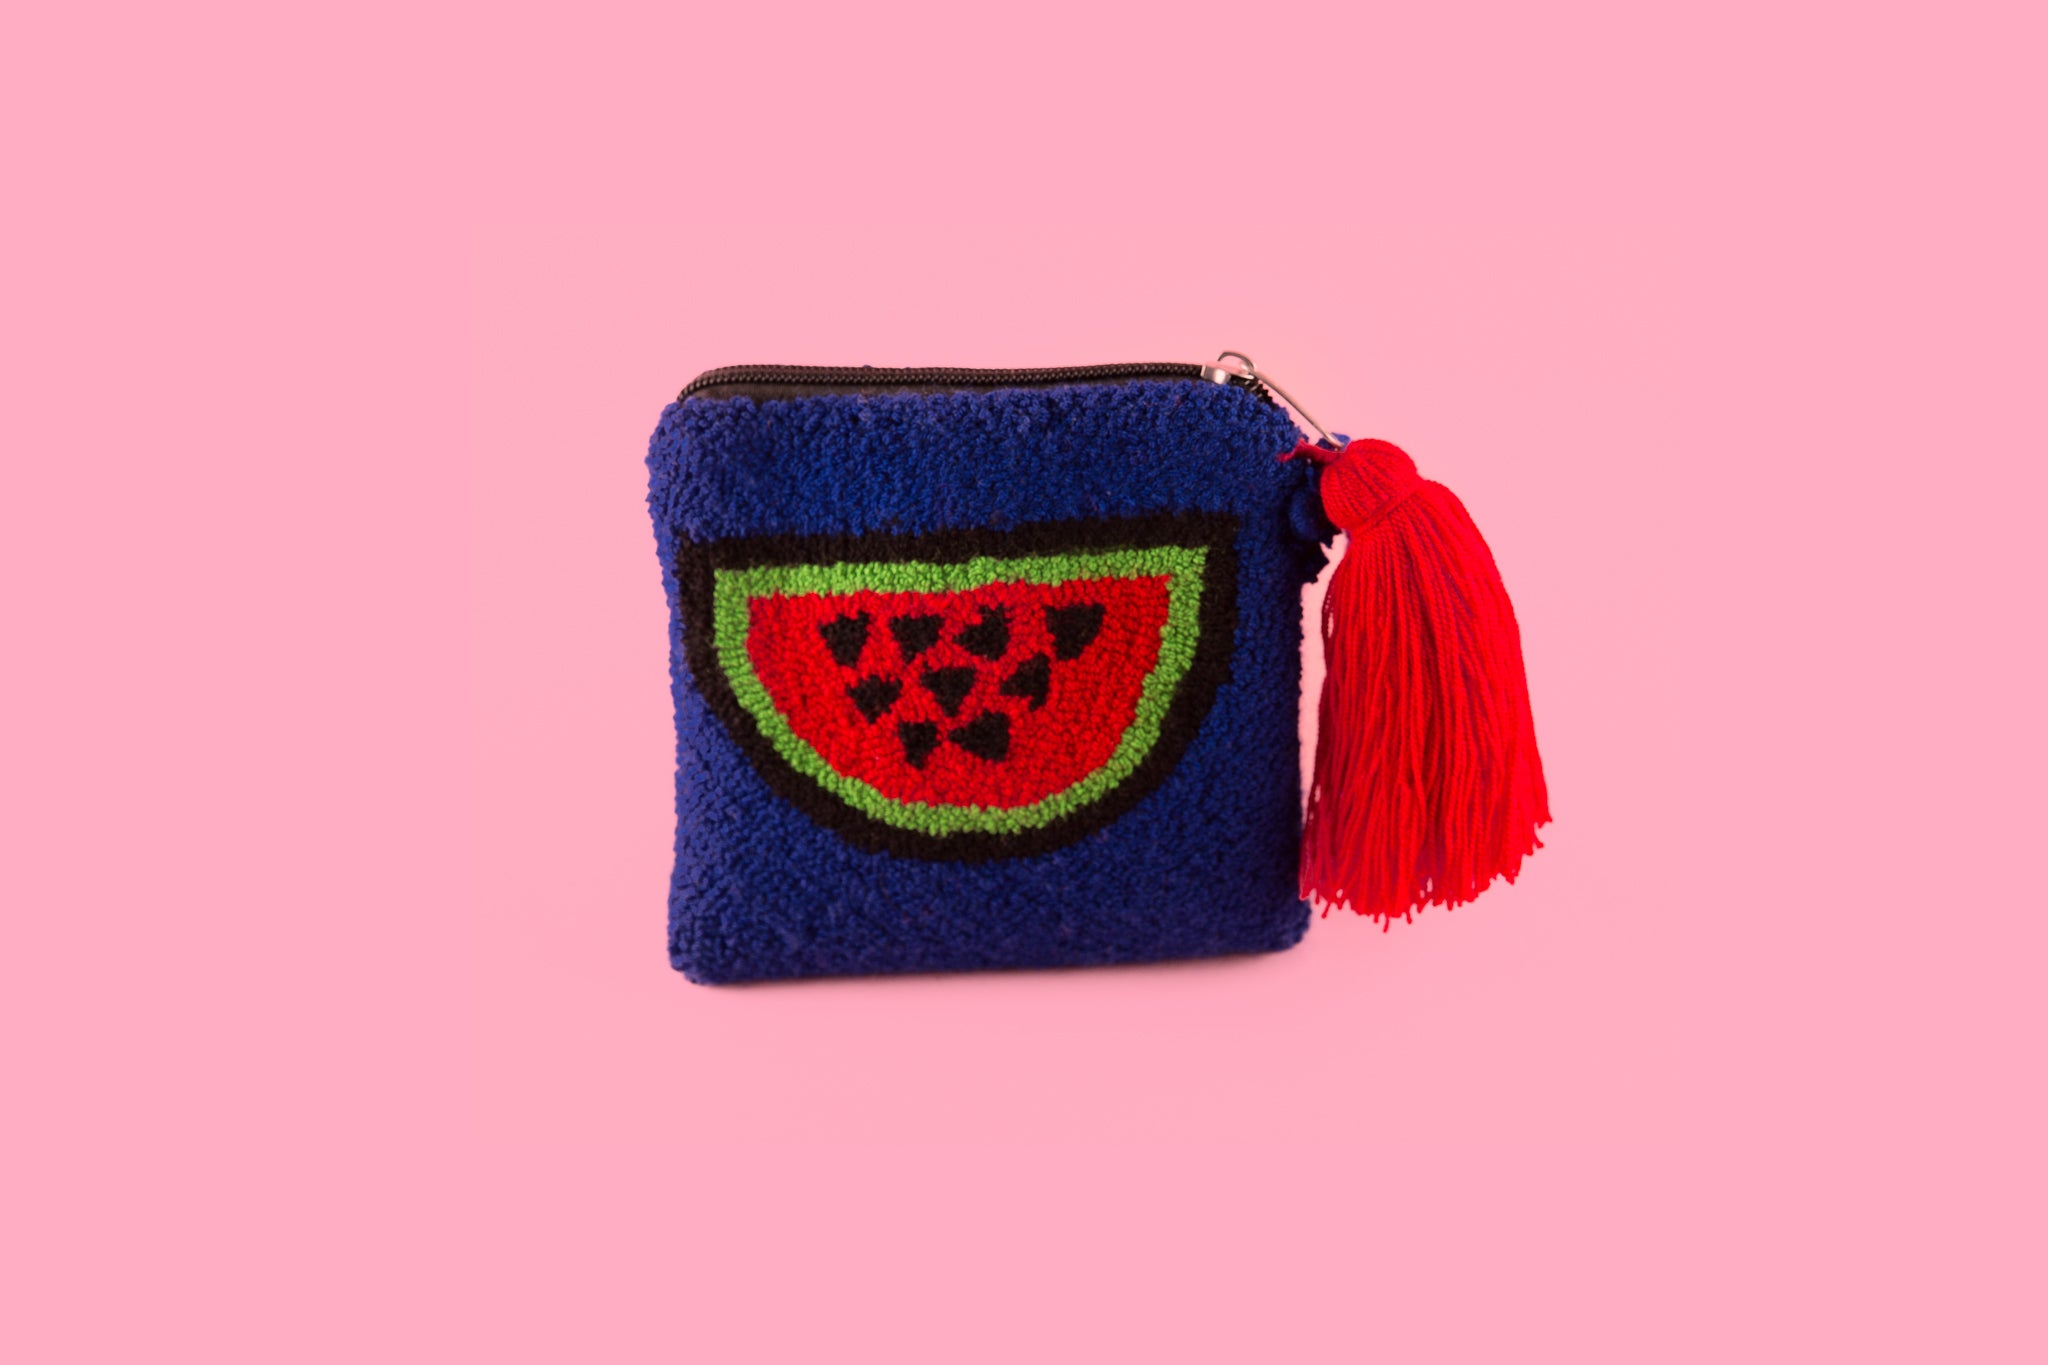 Watermelon purse